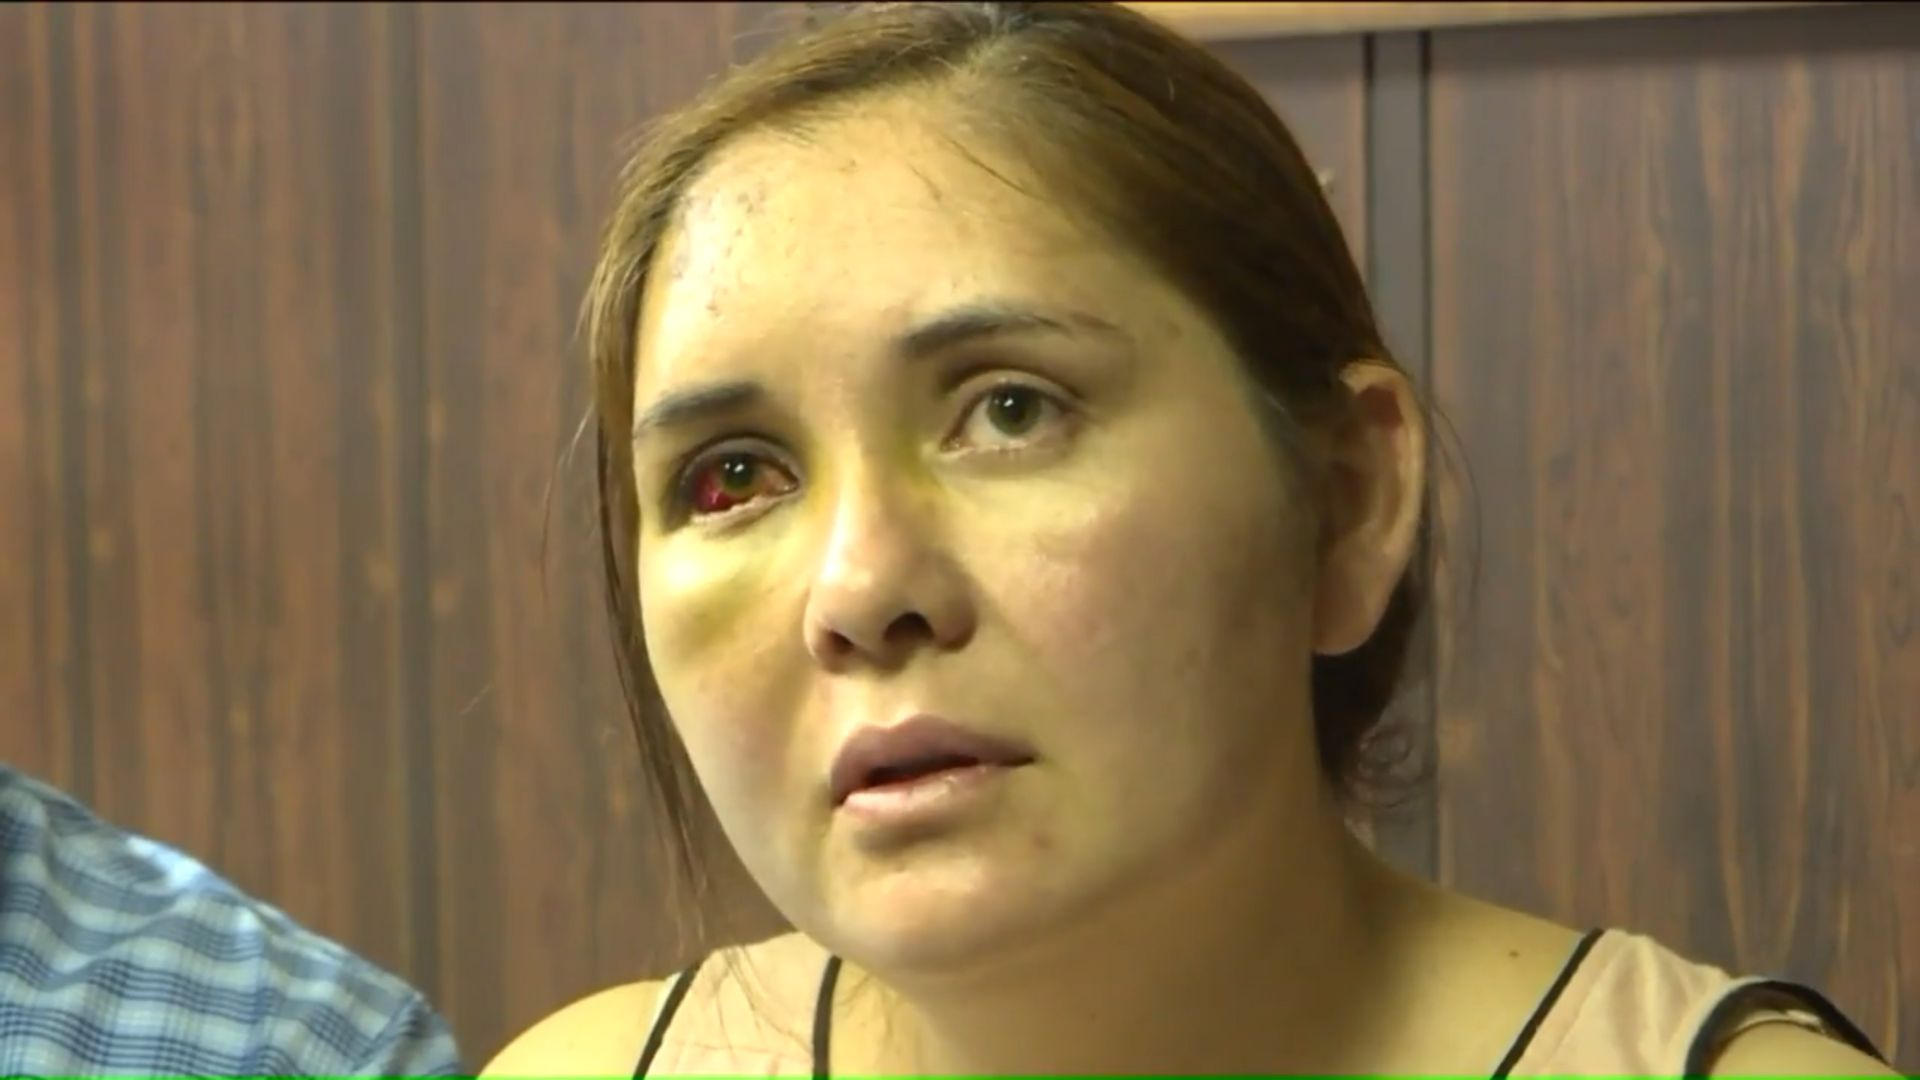 Beronica Ruiz says she was beaten unconscious by a 13-year-old boy who had been bullying her son at school, telling him to go